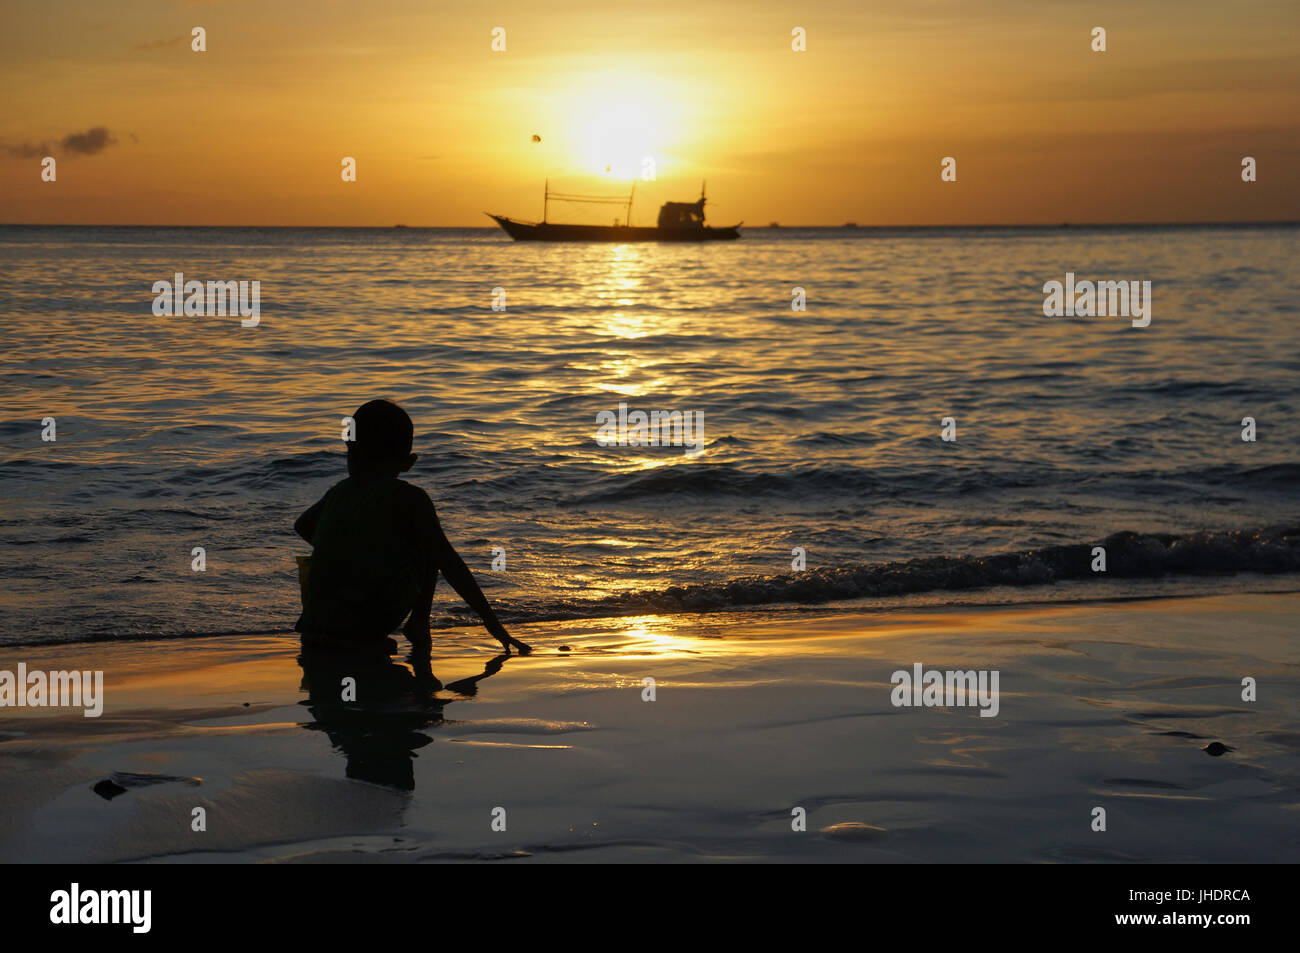 Holiday background. Boy playing against golden sky and sea during sunset. Boy crouched down playing in the sand Stock Photo